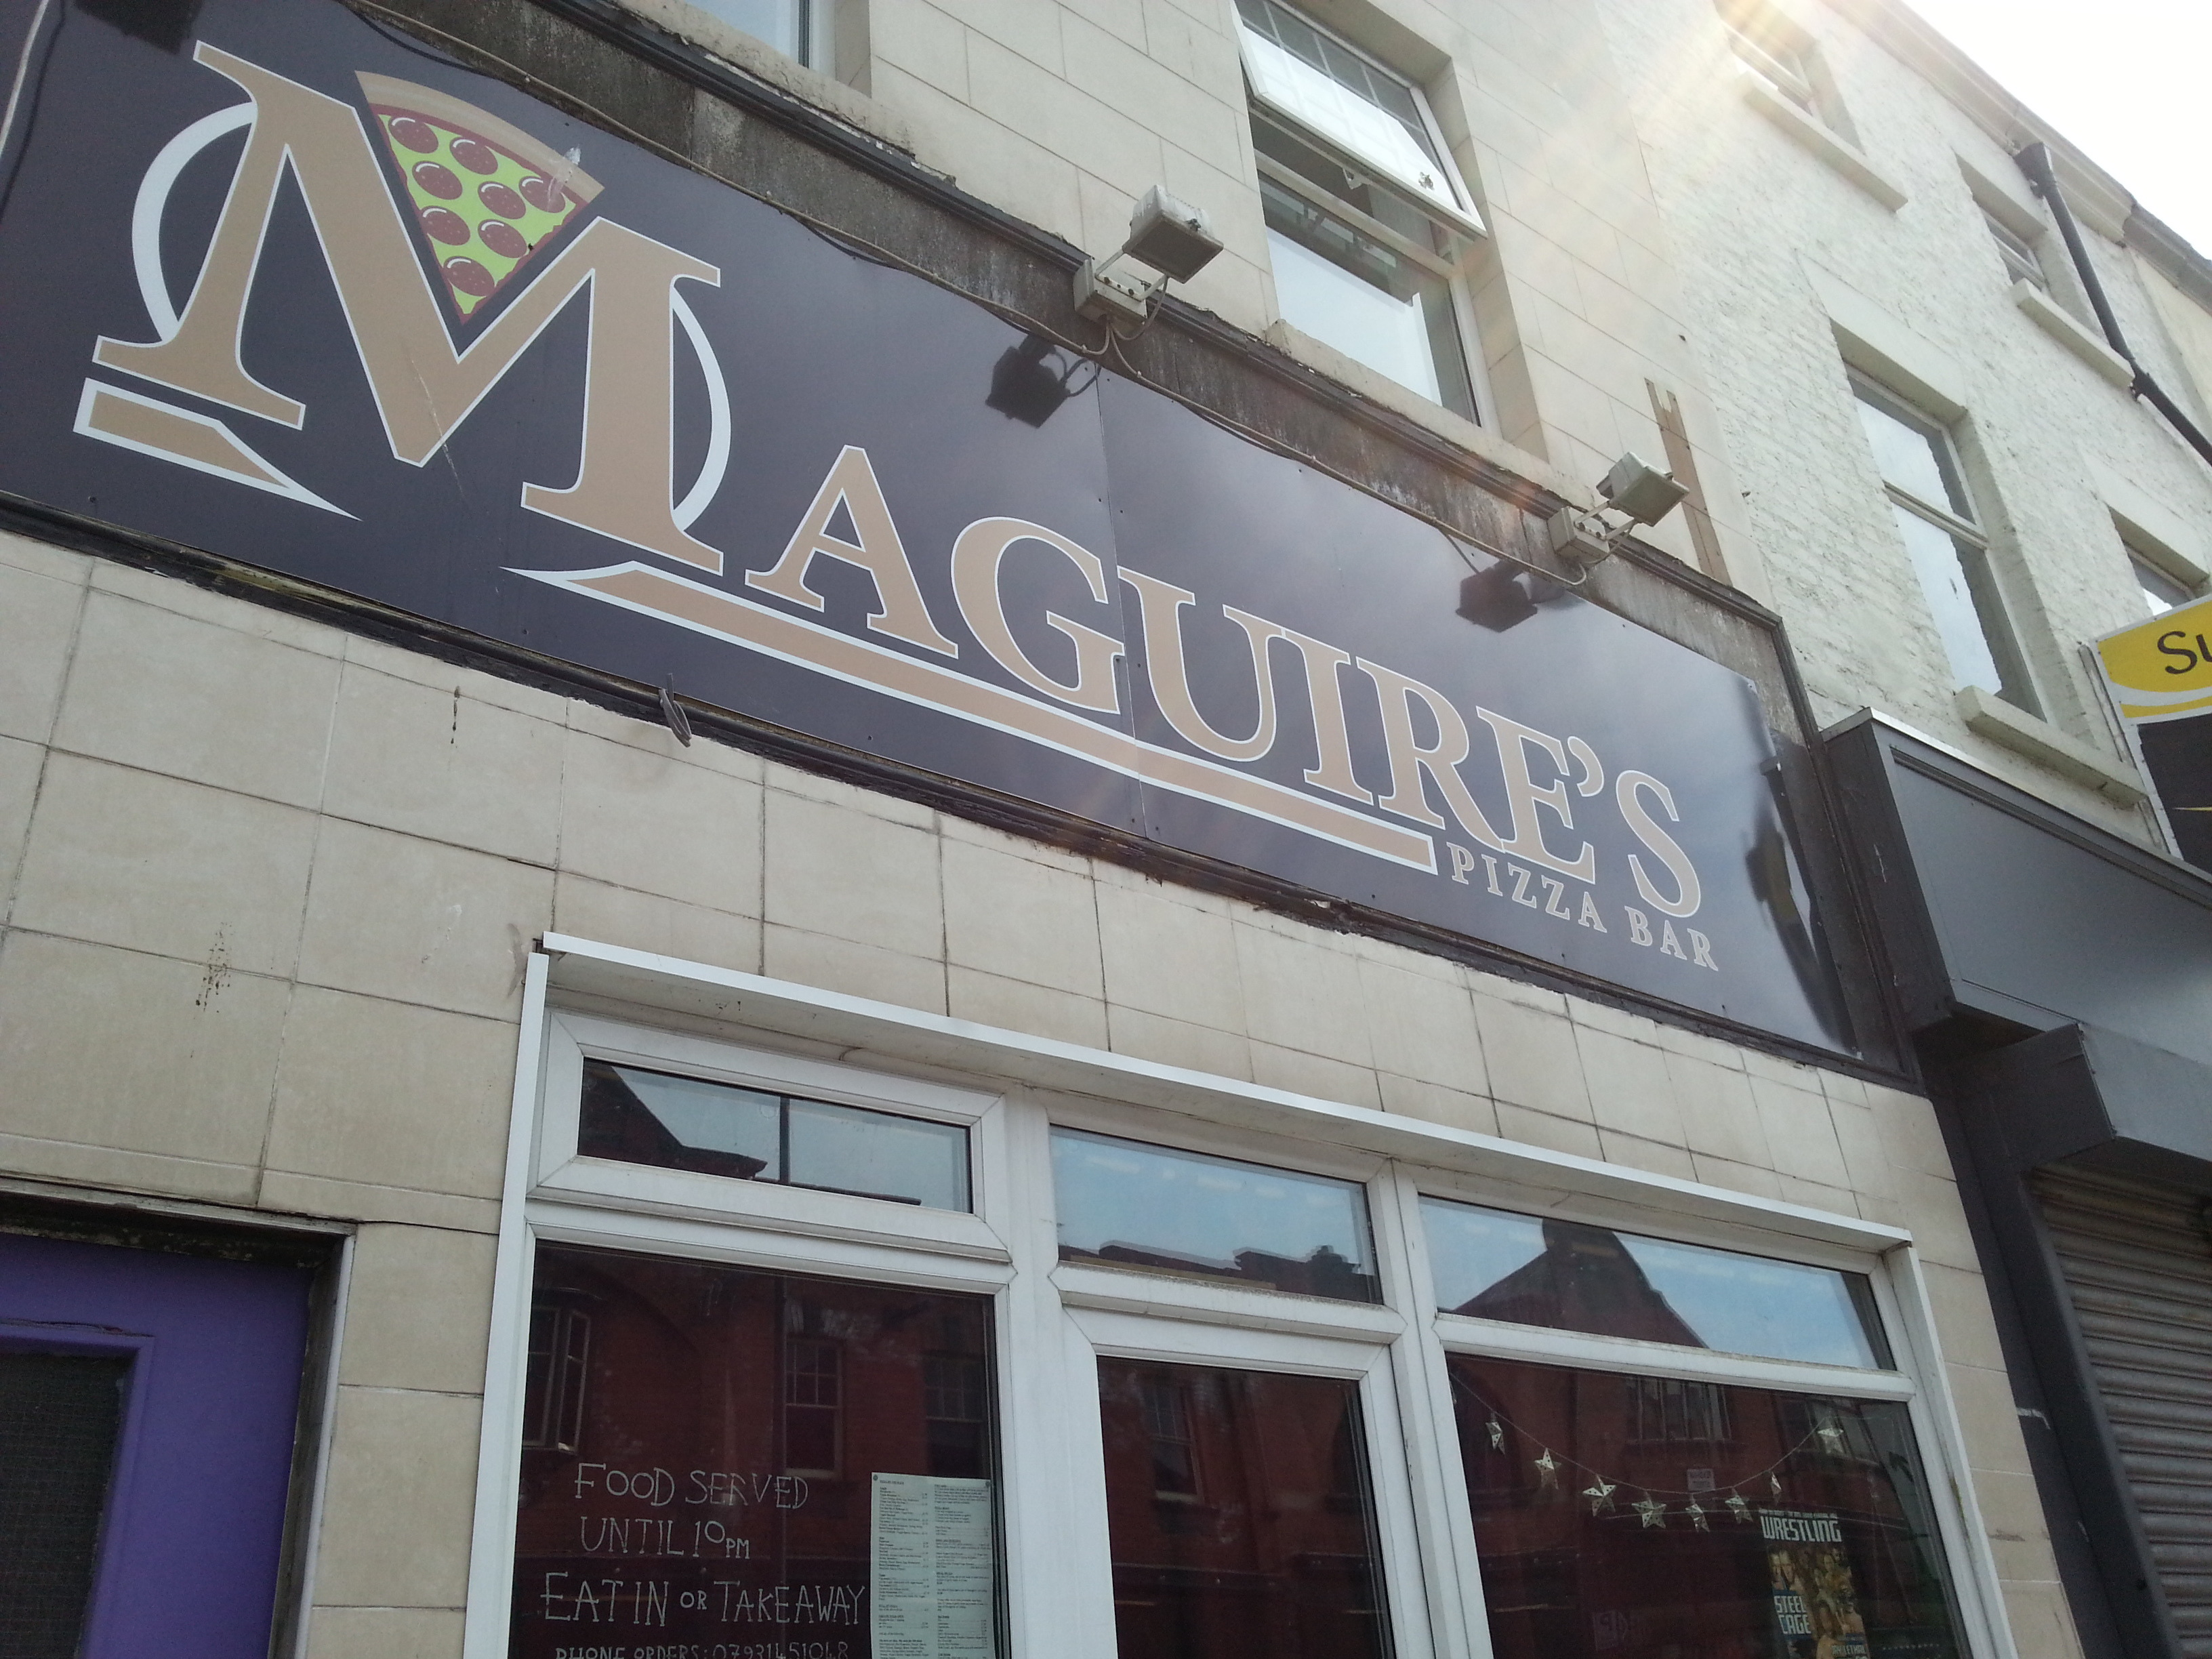 Maguire's Pizza Bar Profile Pic